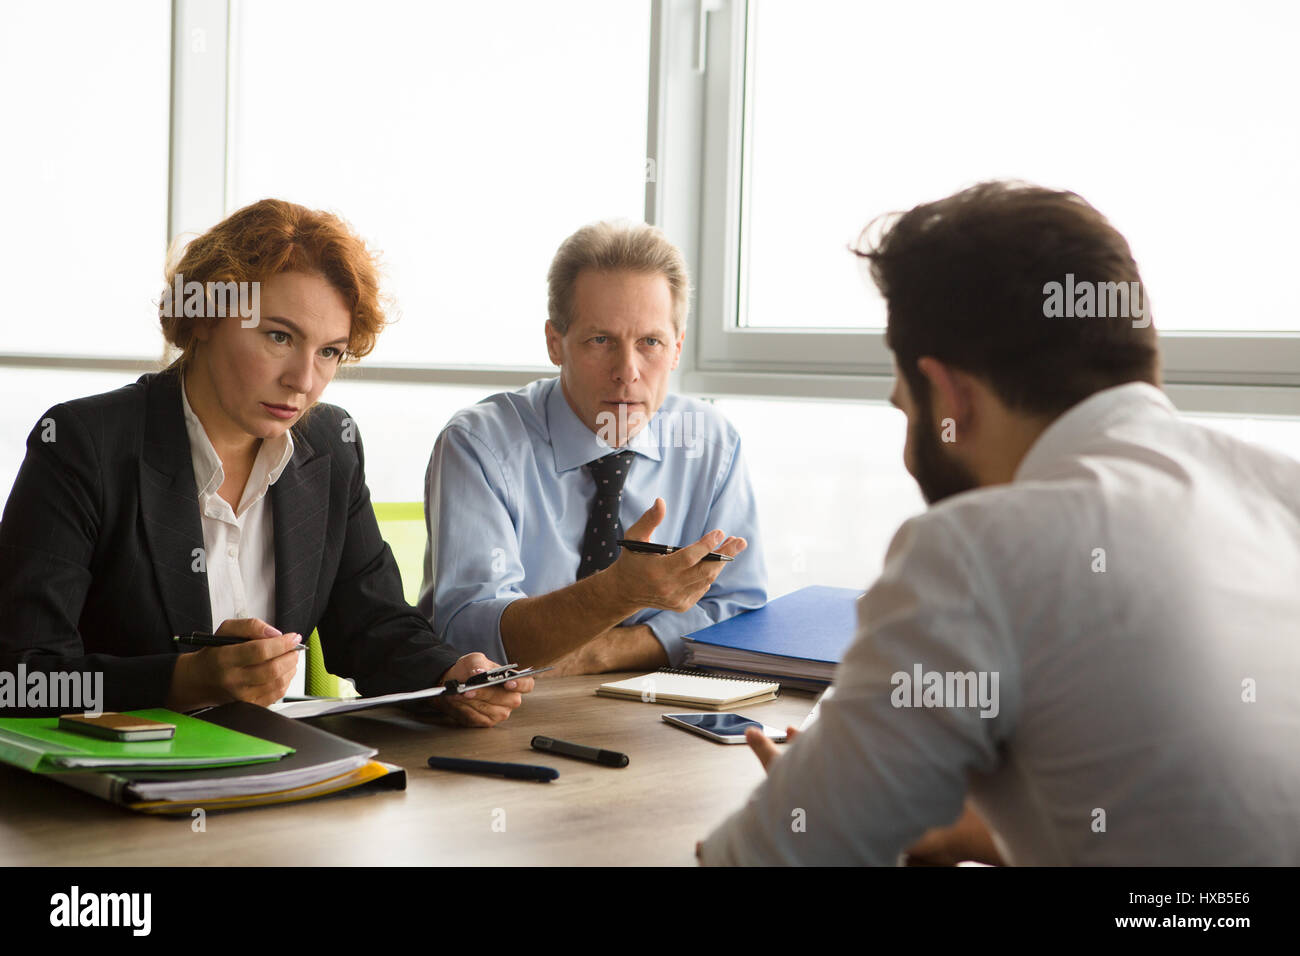 Job interview in office - Stock Image